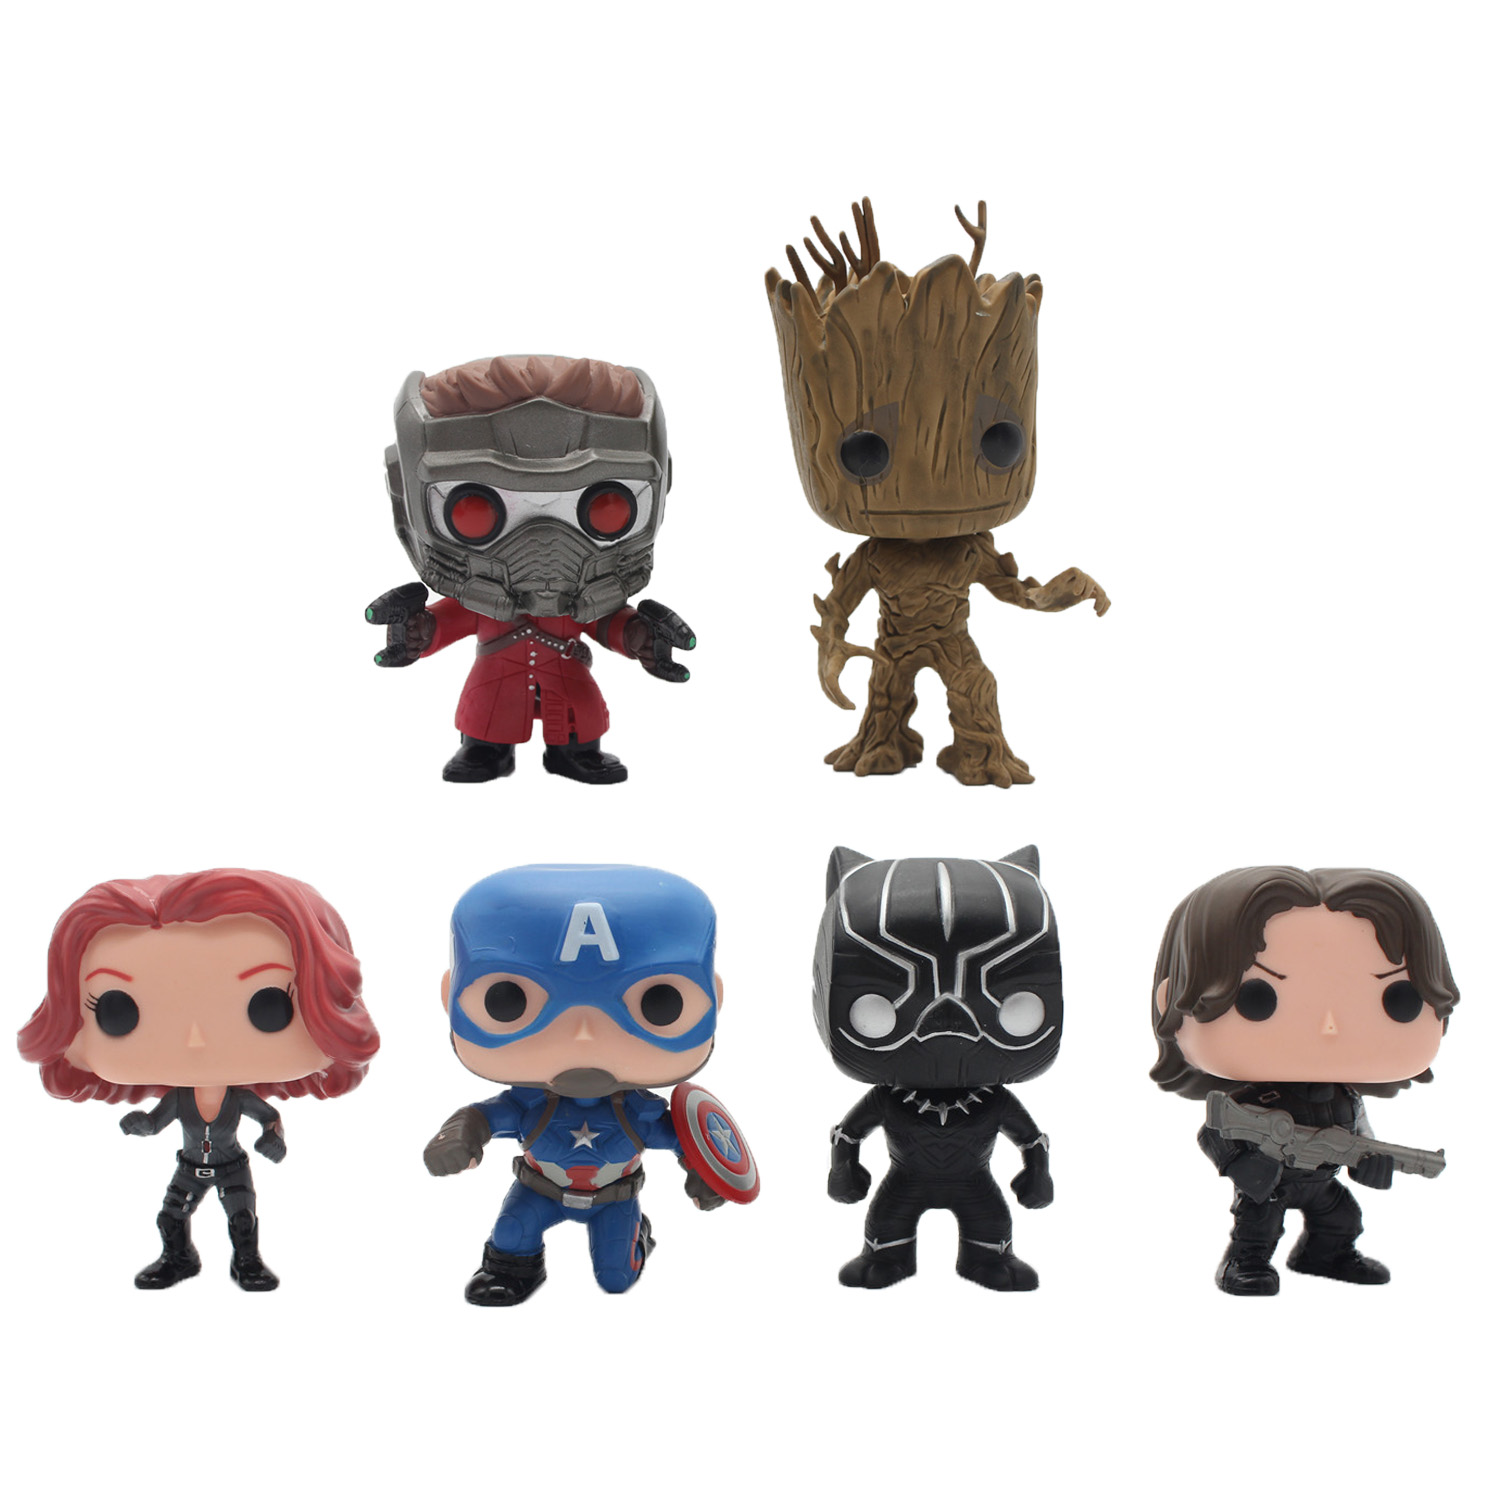 Chanycore Funko pop Groot Guardians of the Galaxy Avengers <font><b>Captain</b></font> <font><b>America</b></font> Black Widow Panther <font><b>Winter</b></font> <font><b>Soldier</b></font> Vinyl <font><b>figure</b></font> toy